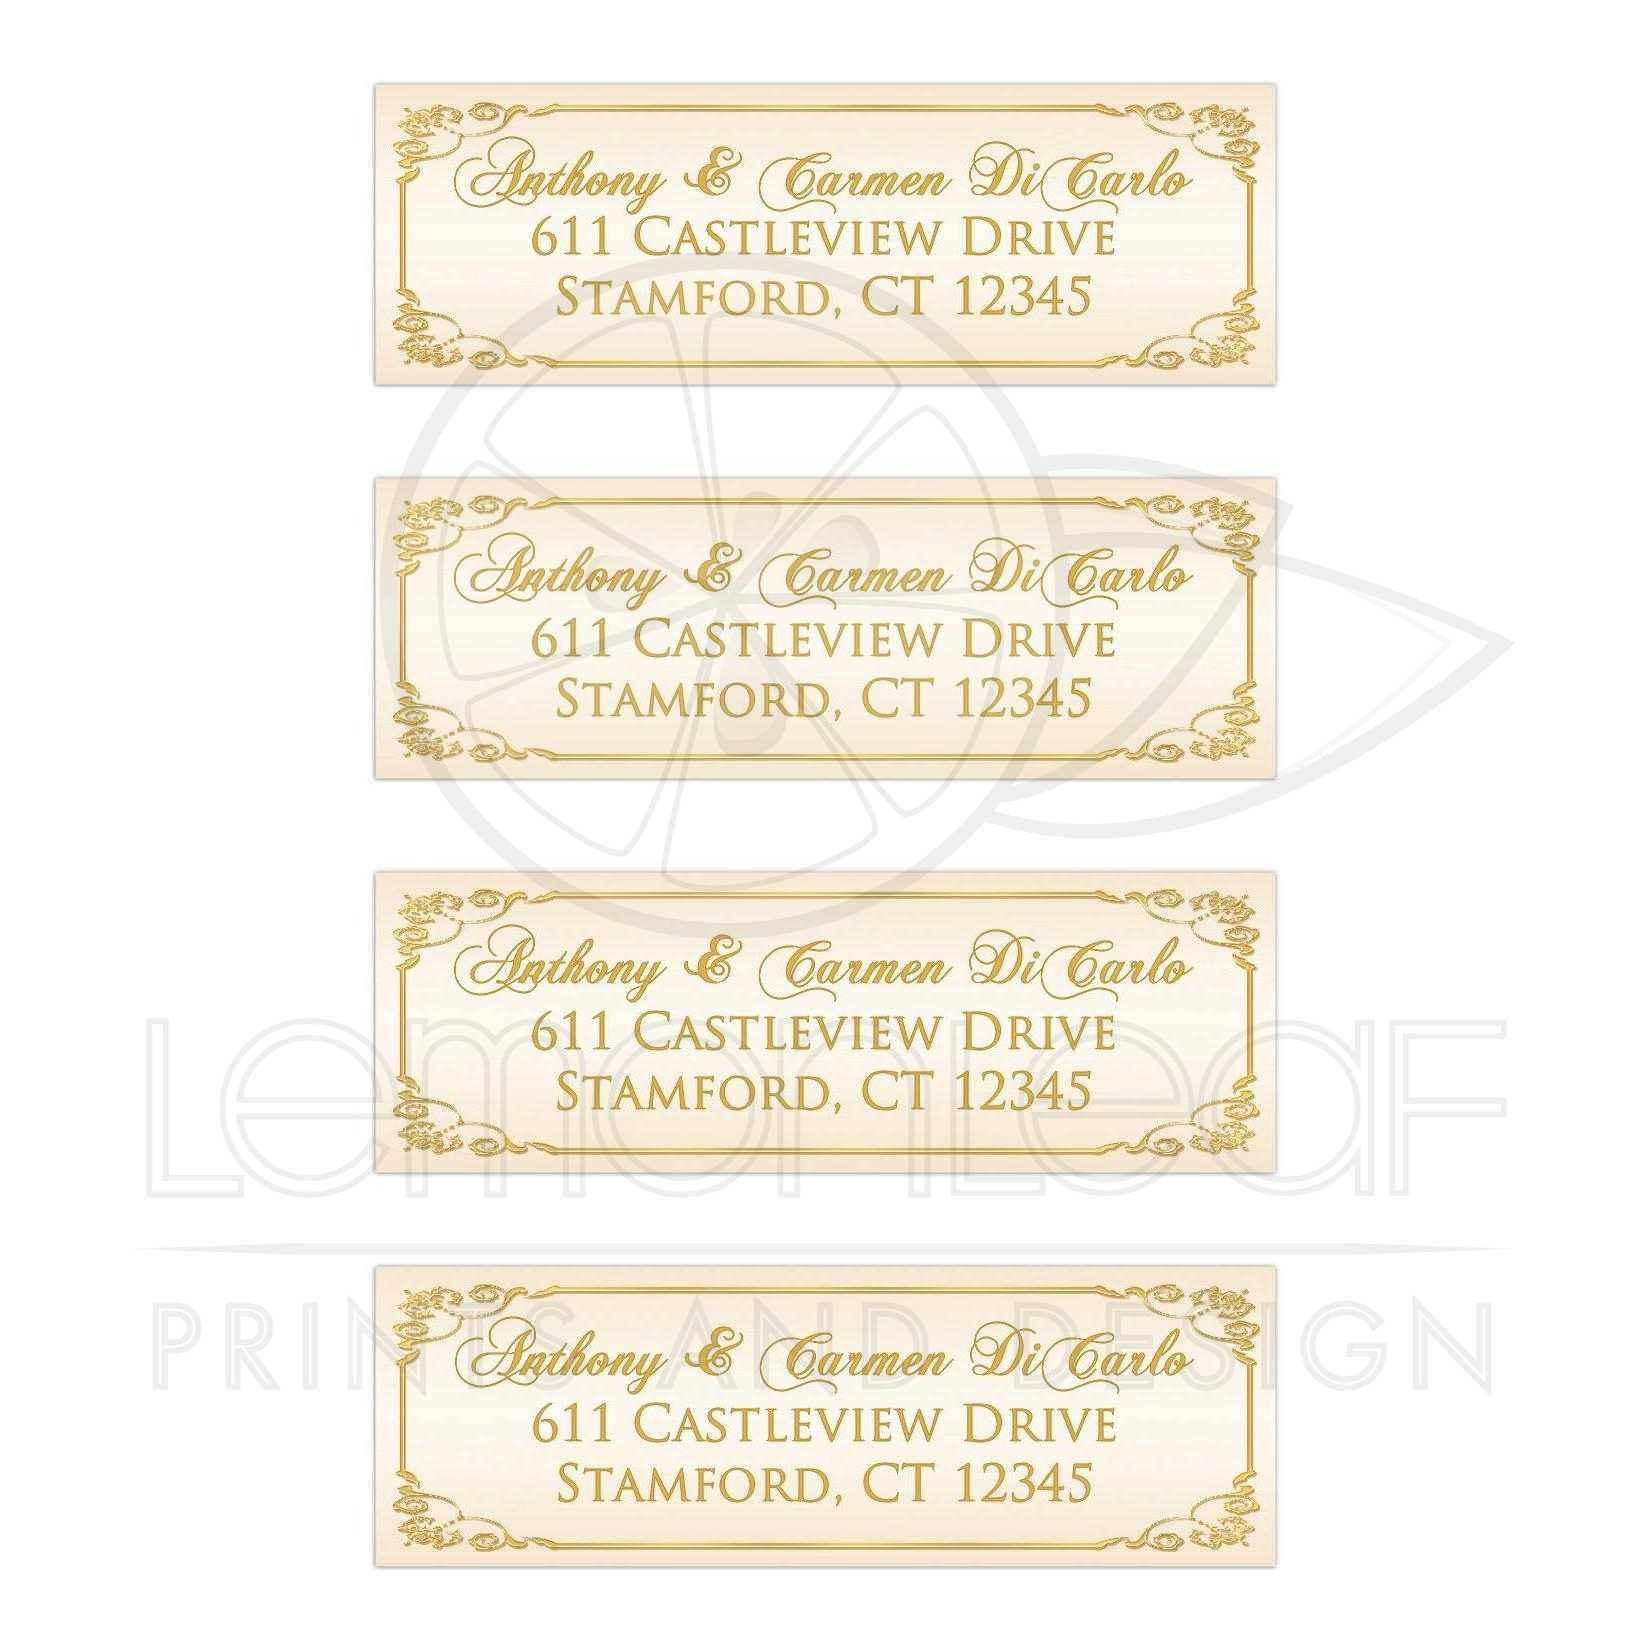 This is a photo of Geeky Ivory Colored Mailing Labels